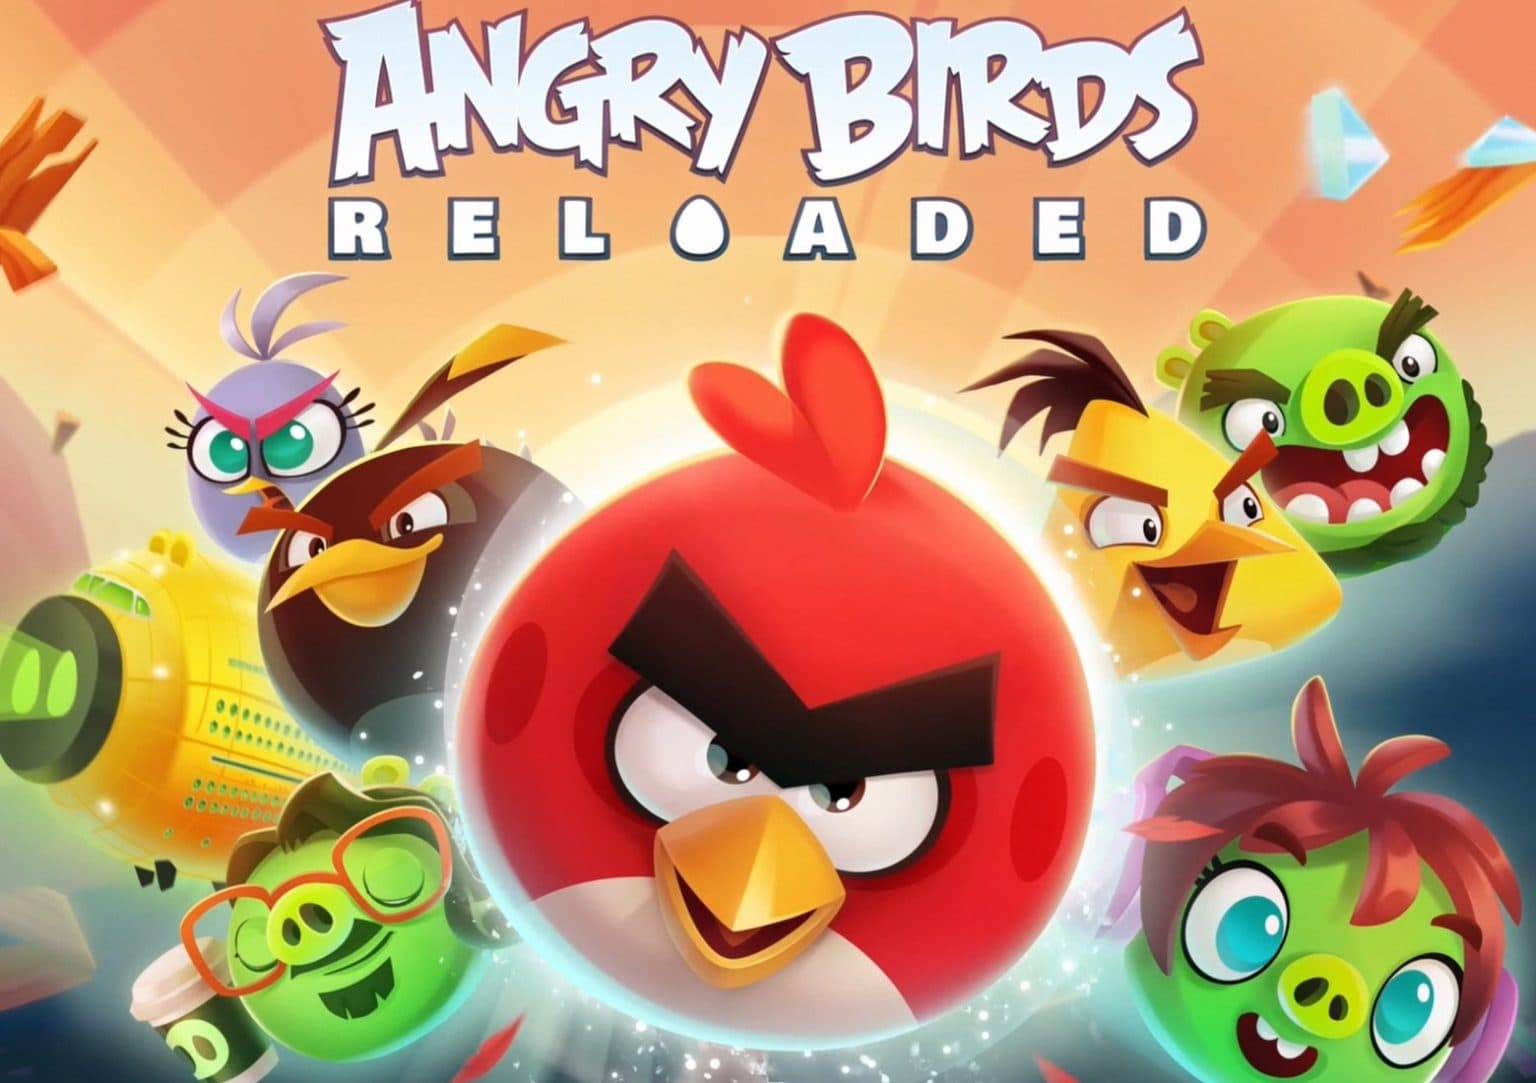 'Angry Birds Reloaded' is coming soon to Apple Arcade.